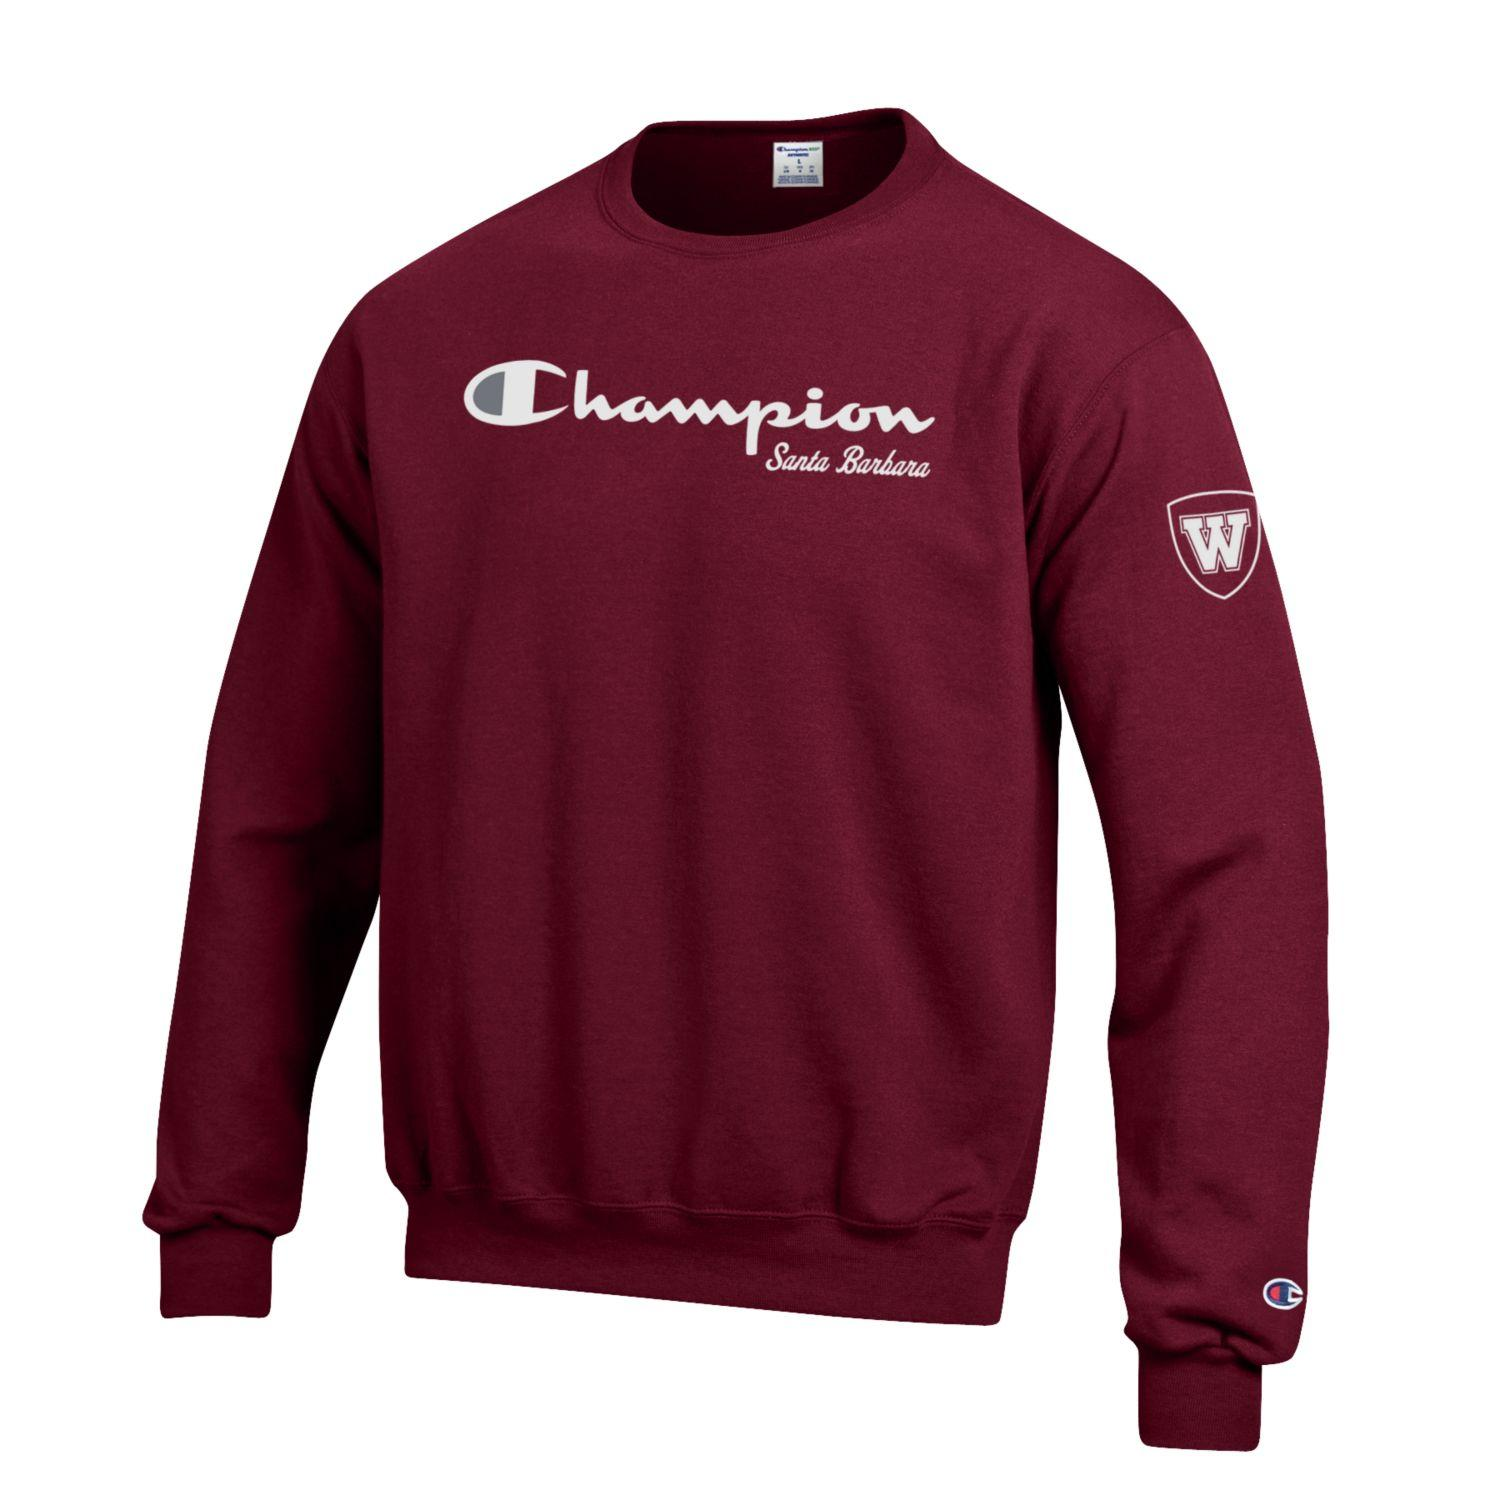 Image for the Champion Santa Barbara Crew product